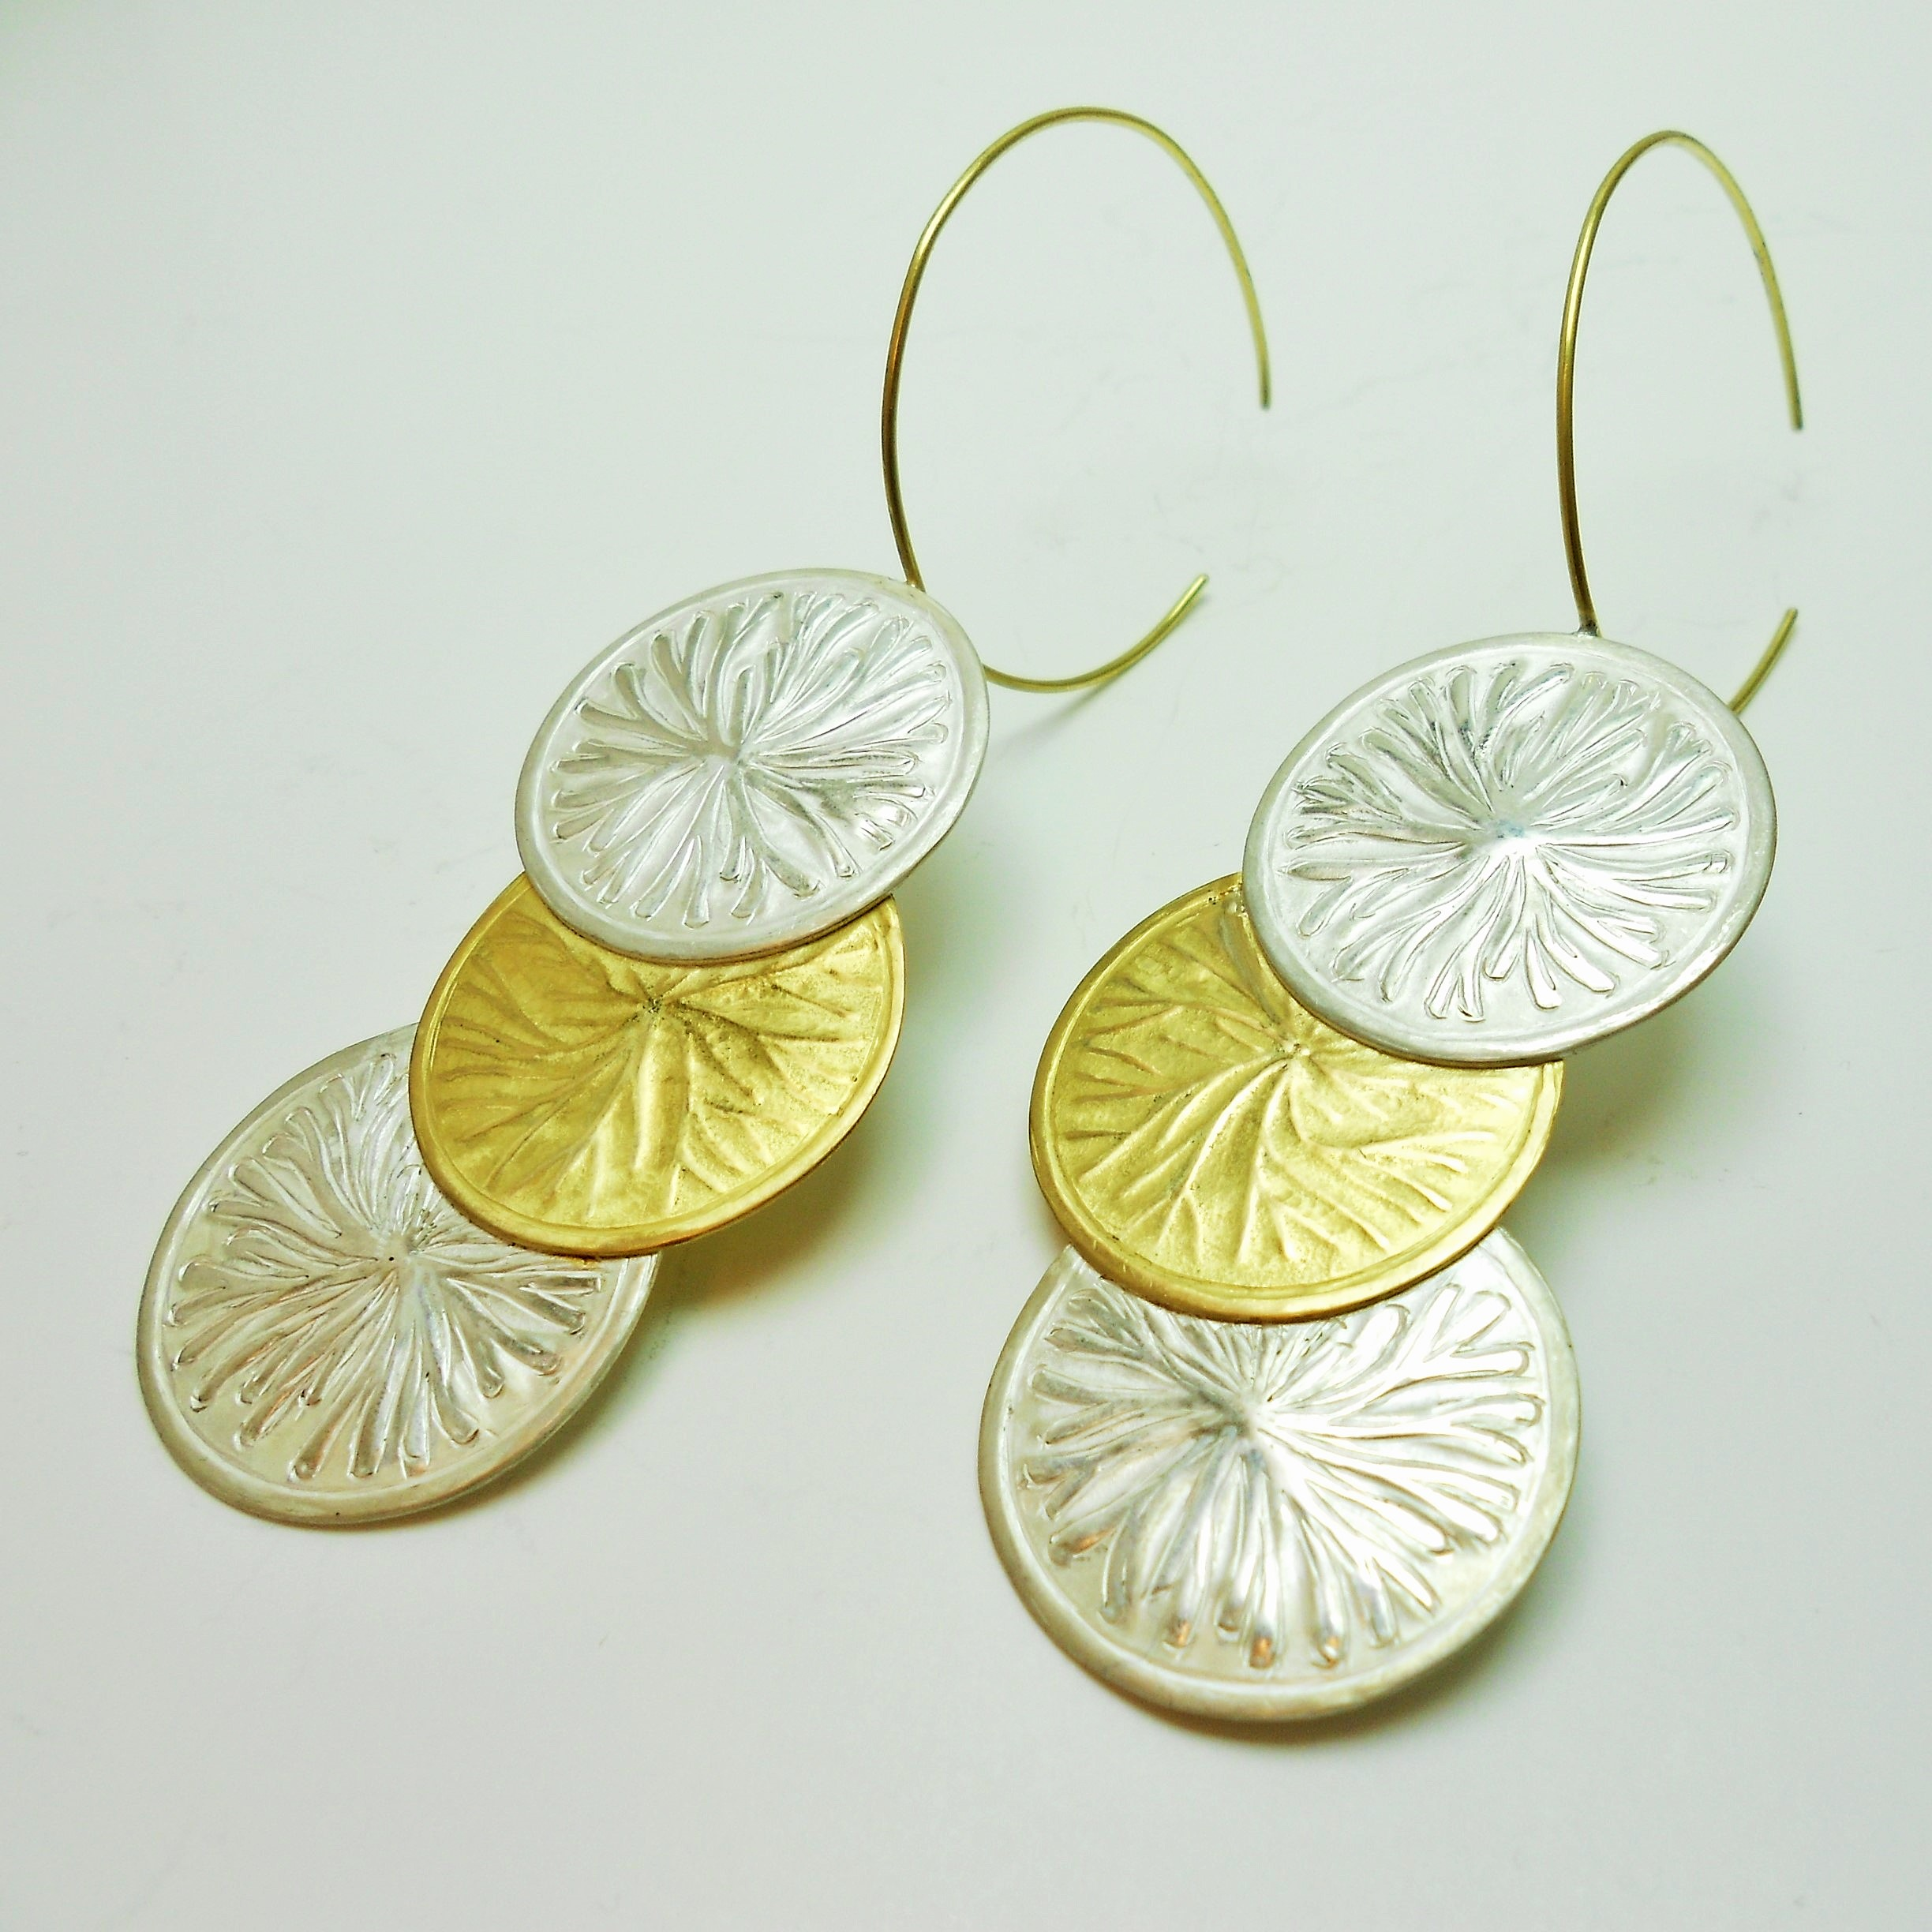 earings in sterling silver and 18 kt gold with chasing and repoussé technique